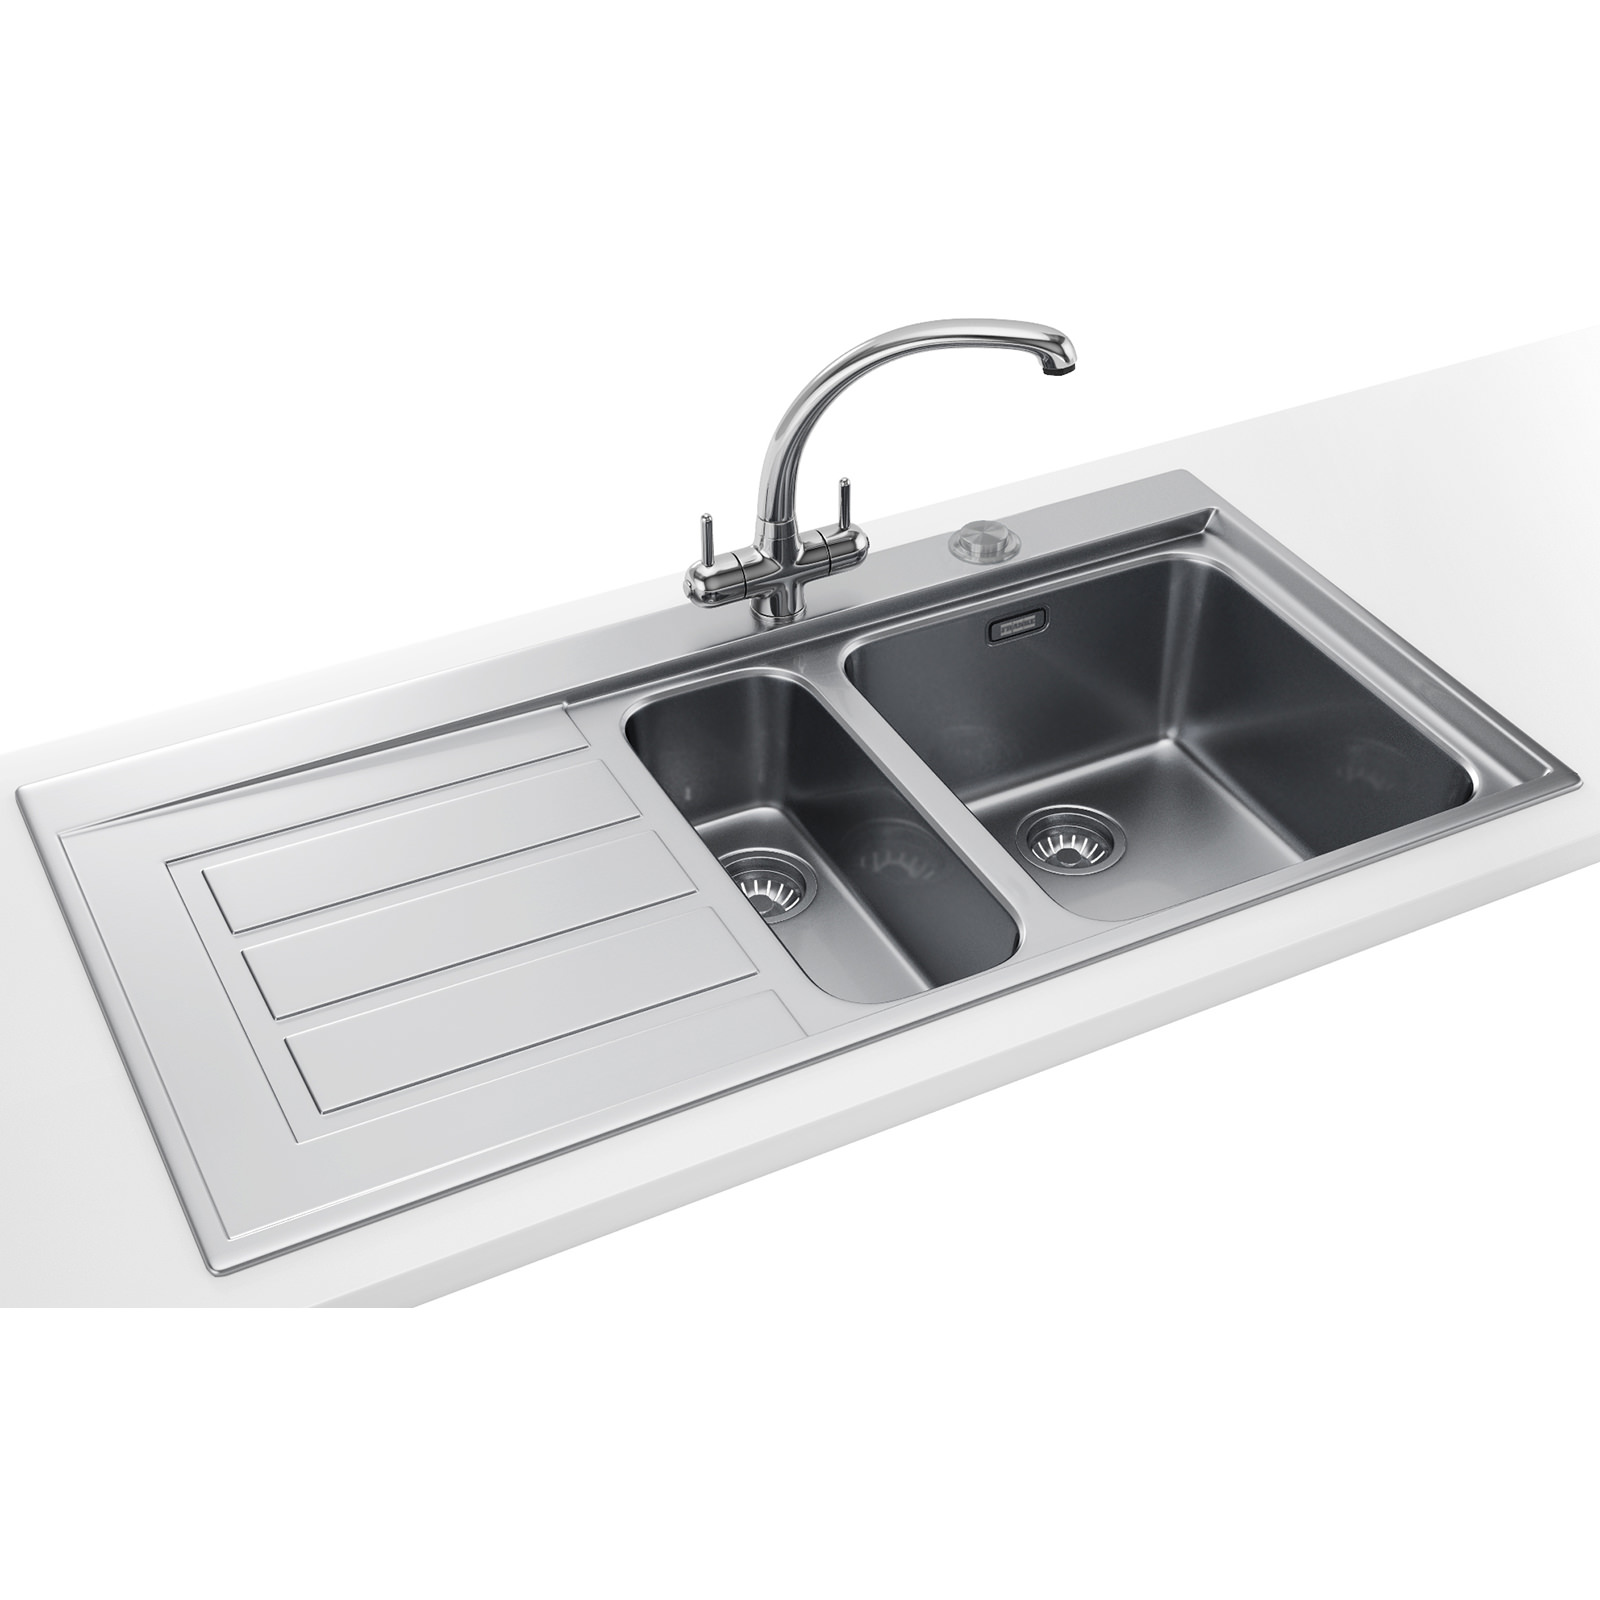 Franke Sinks And Taps : Franke Epos Propack EOX 651 Stainless Steel Kitchen Sink And Tap ...